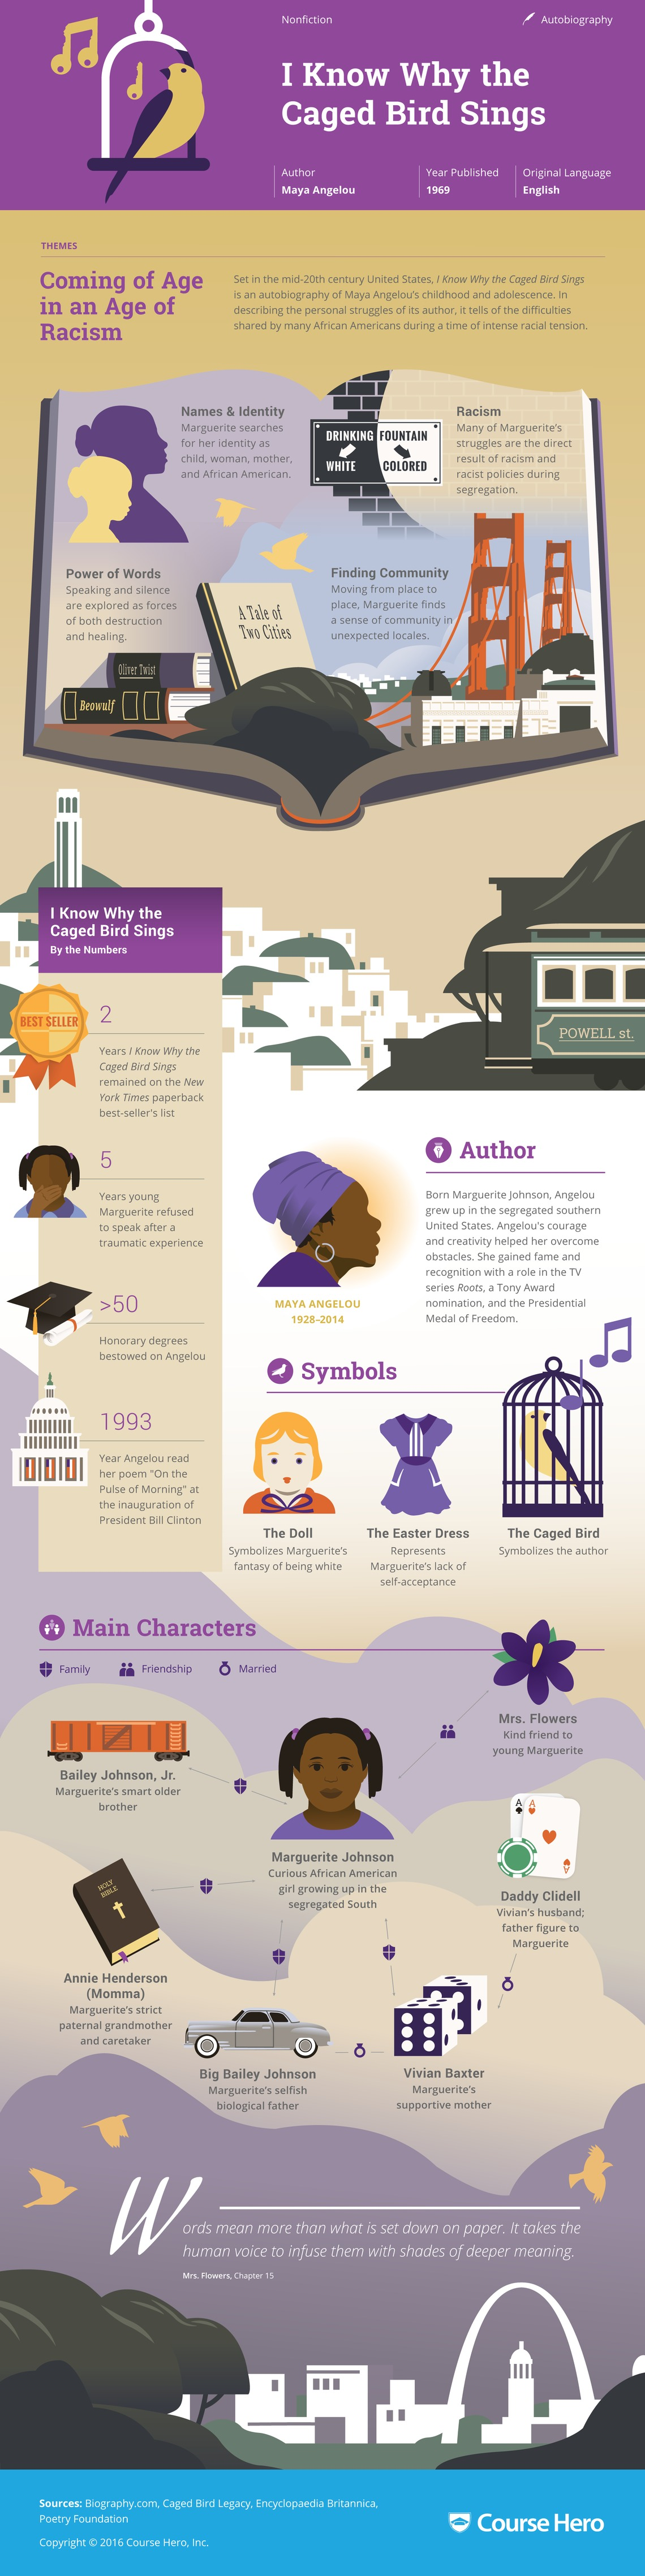 I know why the caged bird sings infographic course hero i know why the caged bird sings infographic course hero biocorpaavc